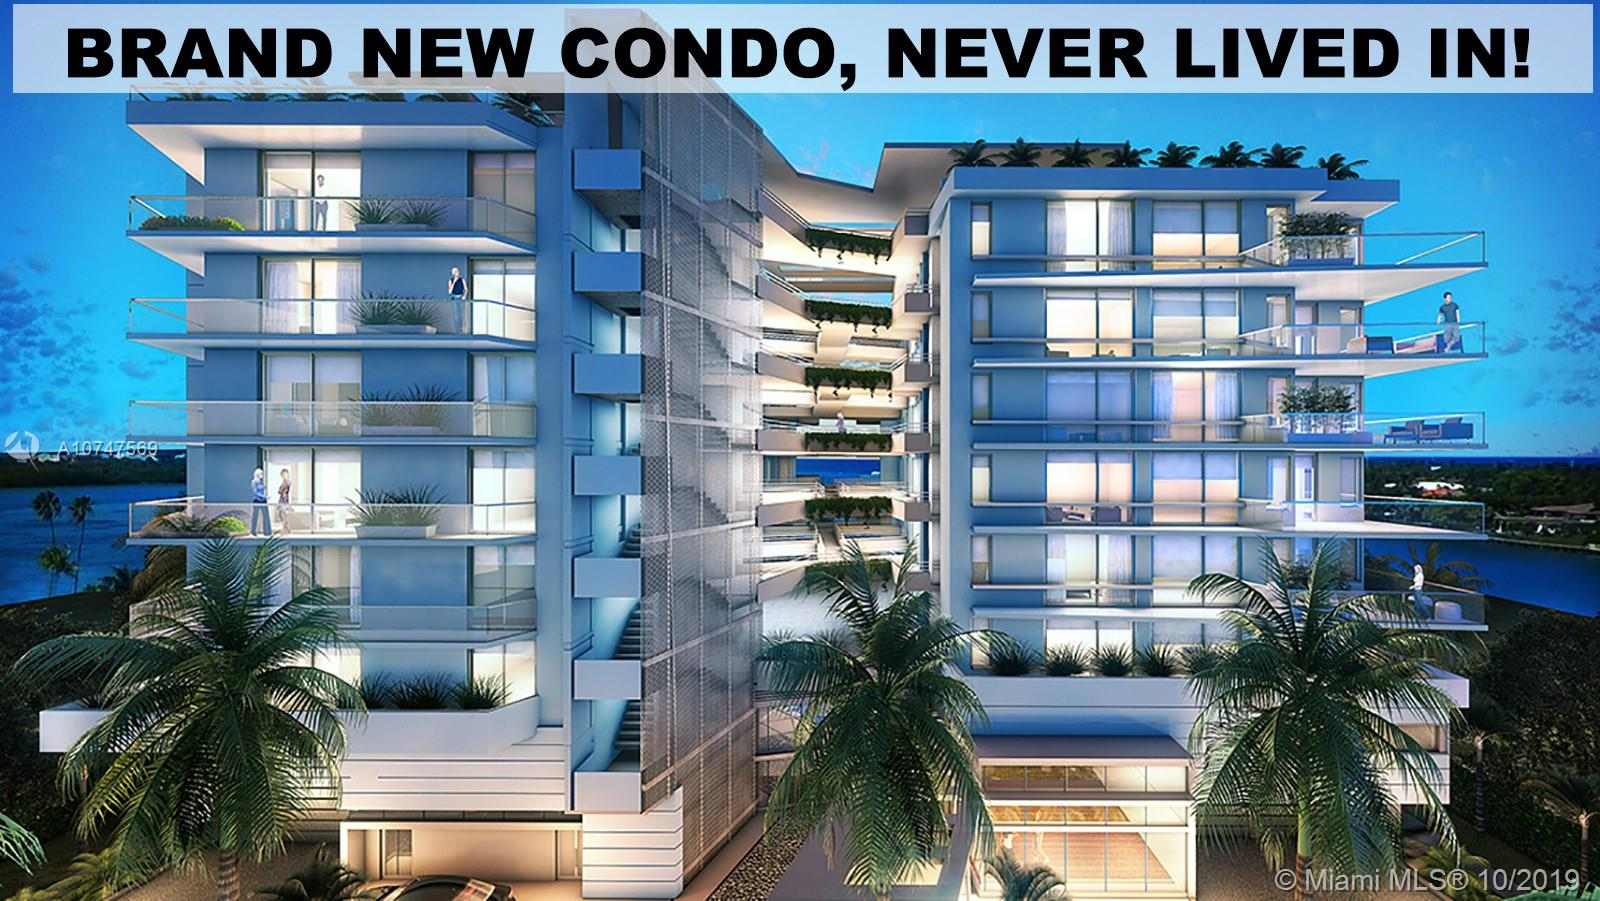 "BRAND NEW CONDO, NEVER LIVED IN! Large 2 Beds + Den (can be 3rd bdr) & 2 Baths with partial water view. 2 covered parking spaces + 1 storage cage. Complete Kitchen with top of the line appliances including wine cooler and washer/dryer. The Palms Condo is a boutique waterfront building with a rooftop pool deck, hot tub, rooftop BBQ/entertainment area with amazing views. Located in Bay Harbor Islands, one of Miami's most desirable locations. Walk to ""A"" rated Ruth K. school (K-8), just minutes to the world-famous Bal Harbour Shops and the sandy beaches of Bal Harbour and Surfside.  The island is perfect for families; playgrounds throughout the island, tennis courts, bicycle paths, citibike rental adjacent to bldg. A one of a kind property in a one of a kind neighborhood. Easy to Show!"